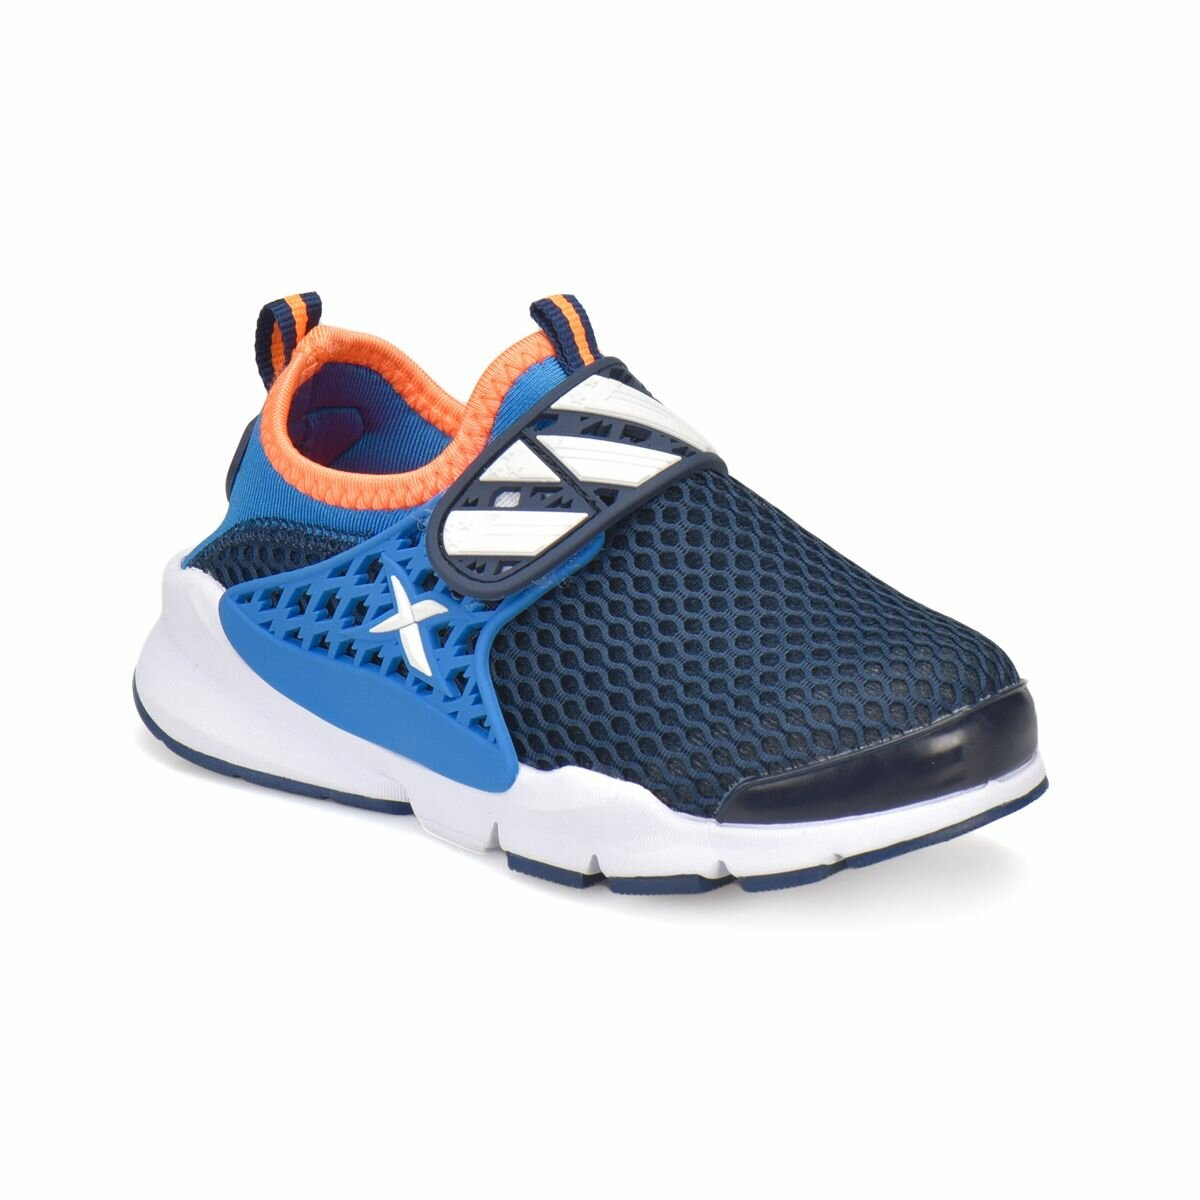 FLO MISAR Navy Blue Male Child Sneaker Shoes KINETIX